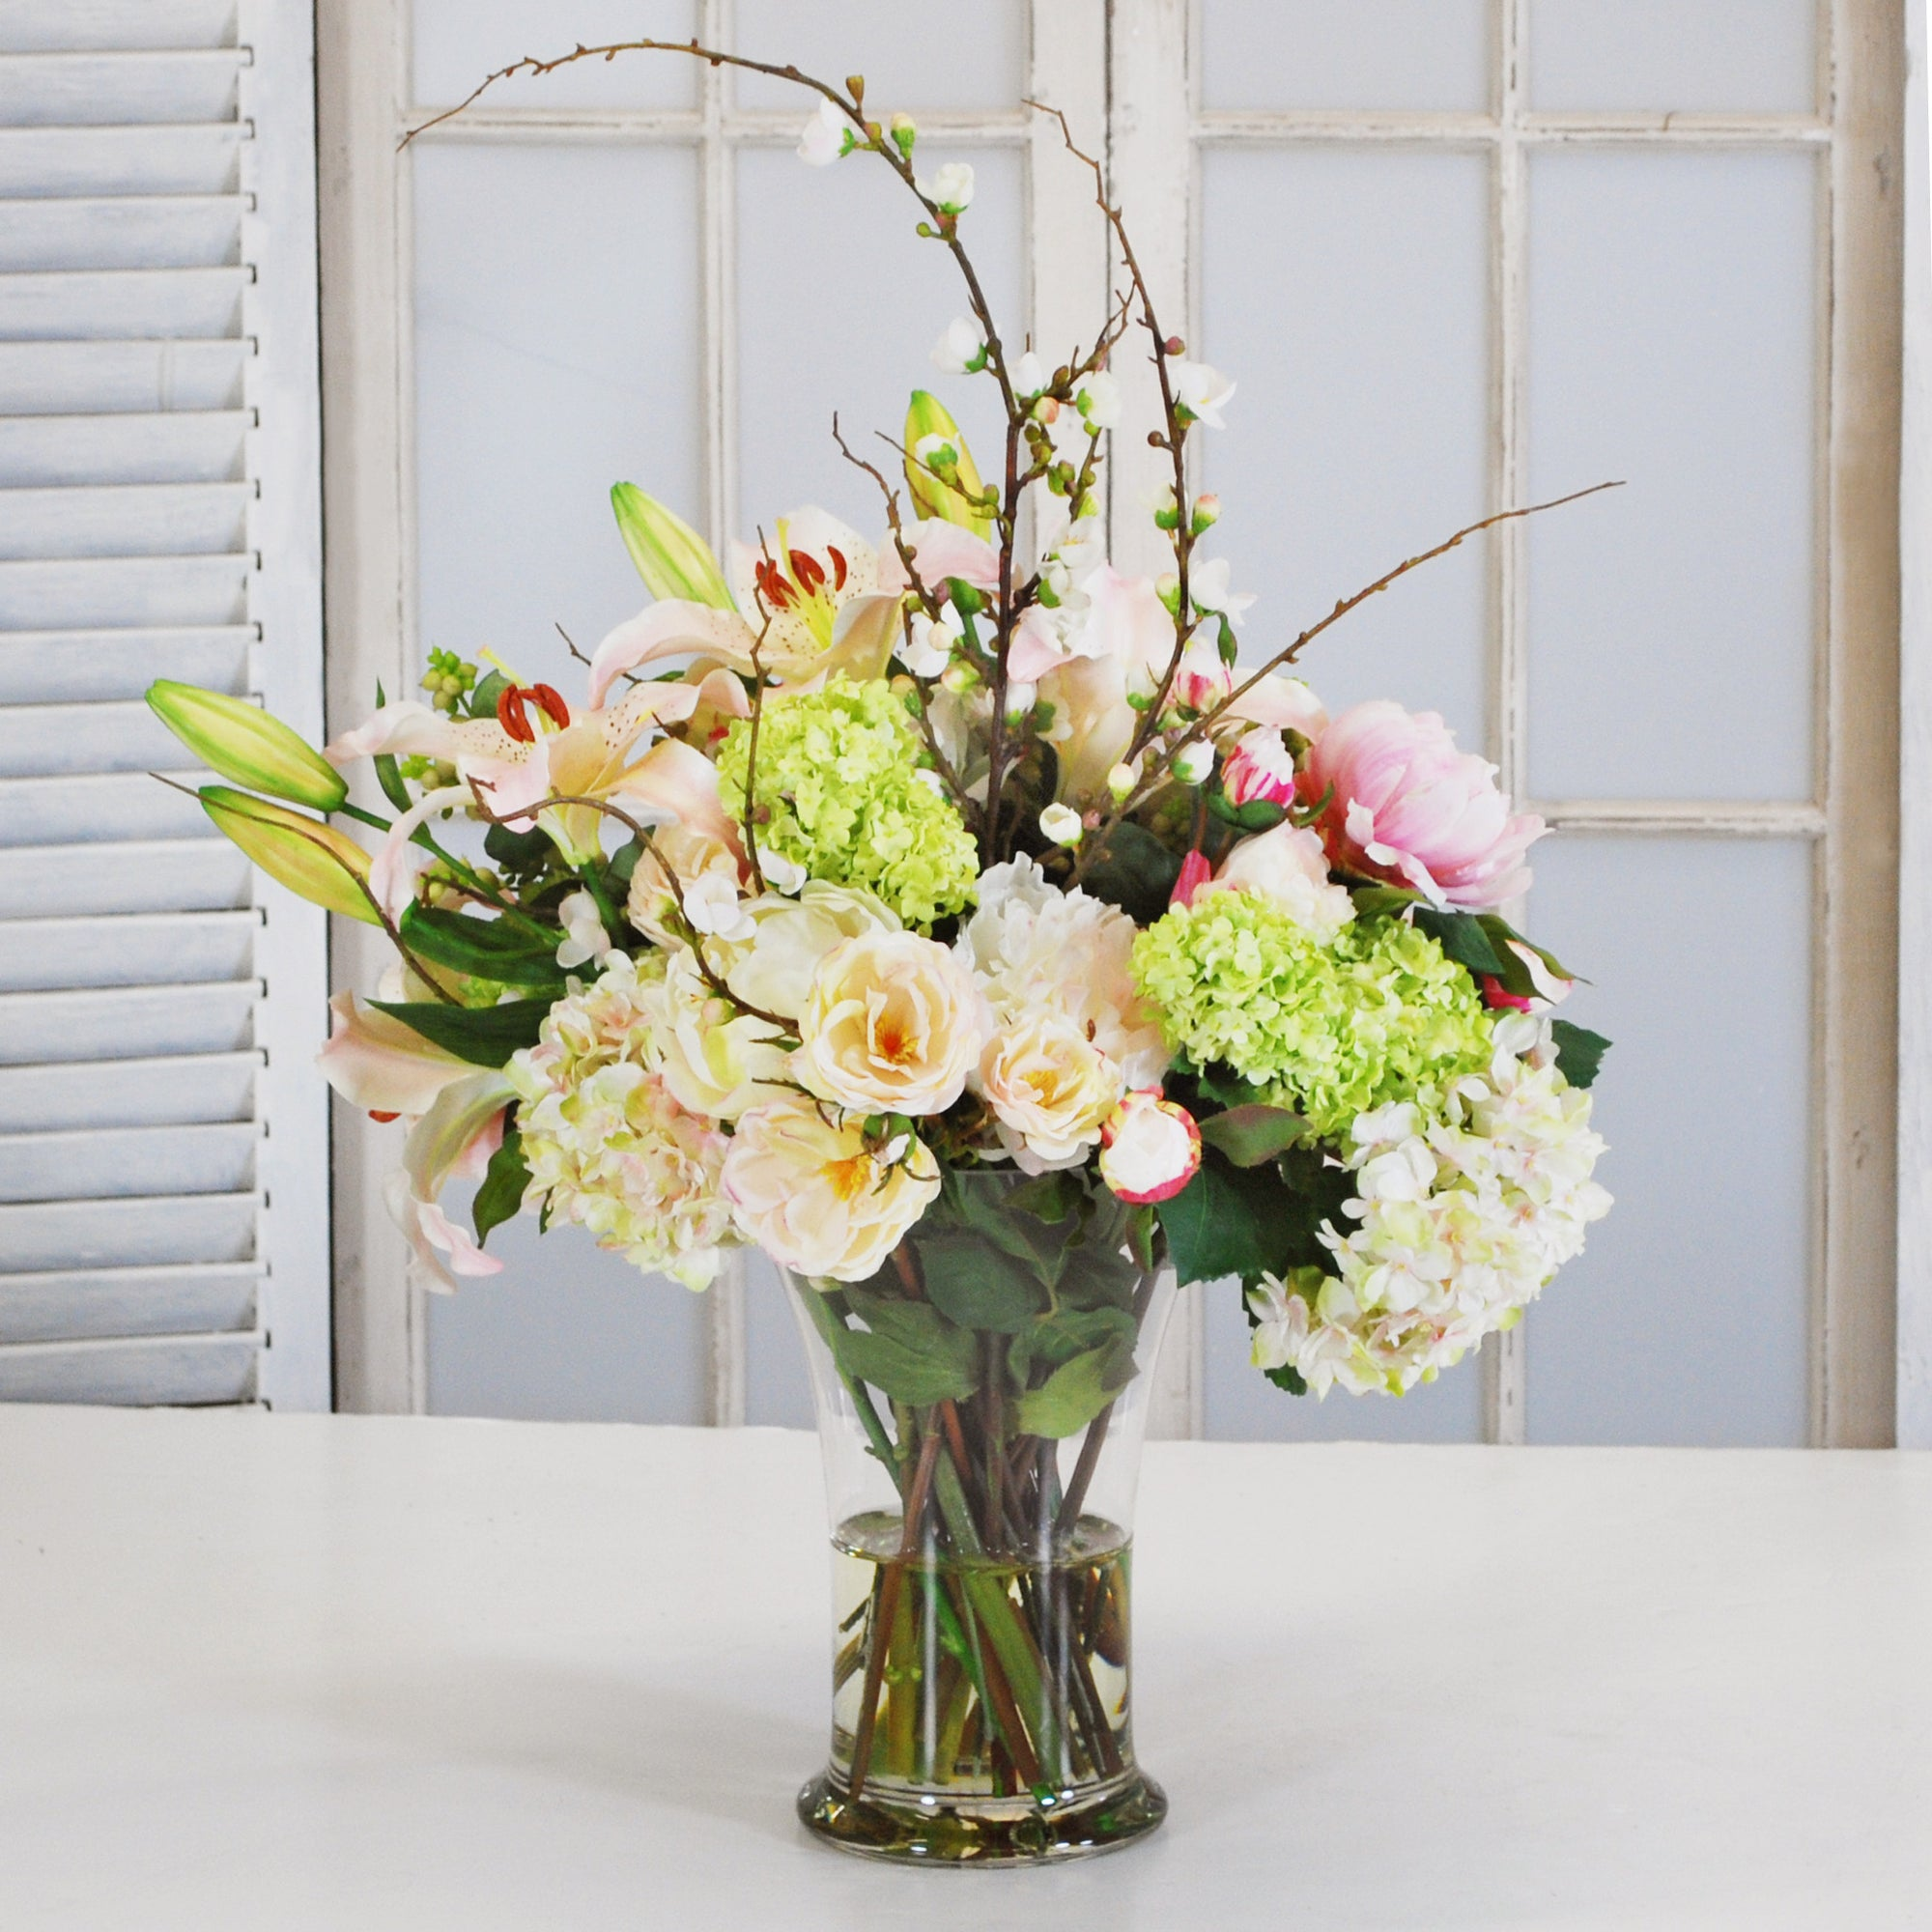 MIX FLORAL IN FLARED VASE (WHD014-PKCH) - Winward Home faux floral arrangements